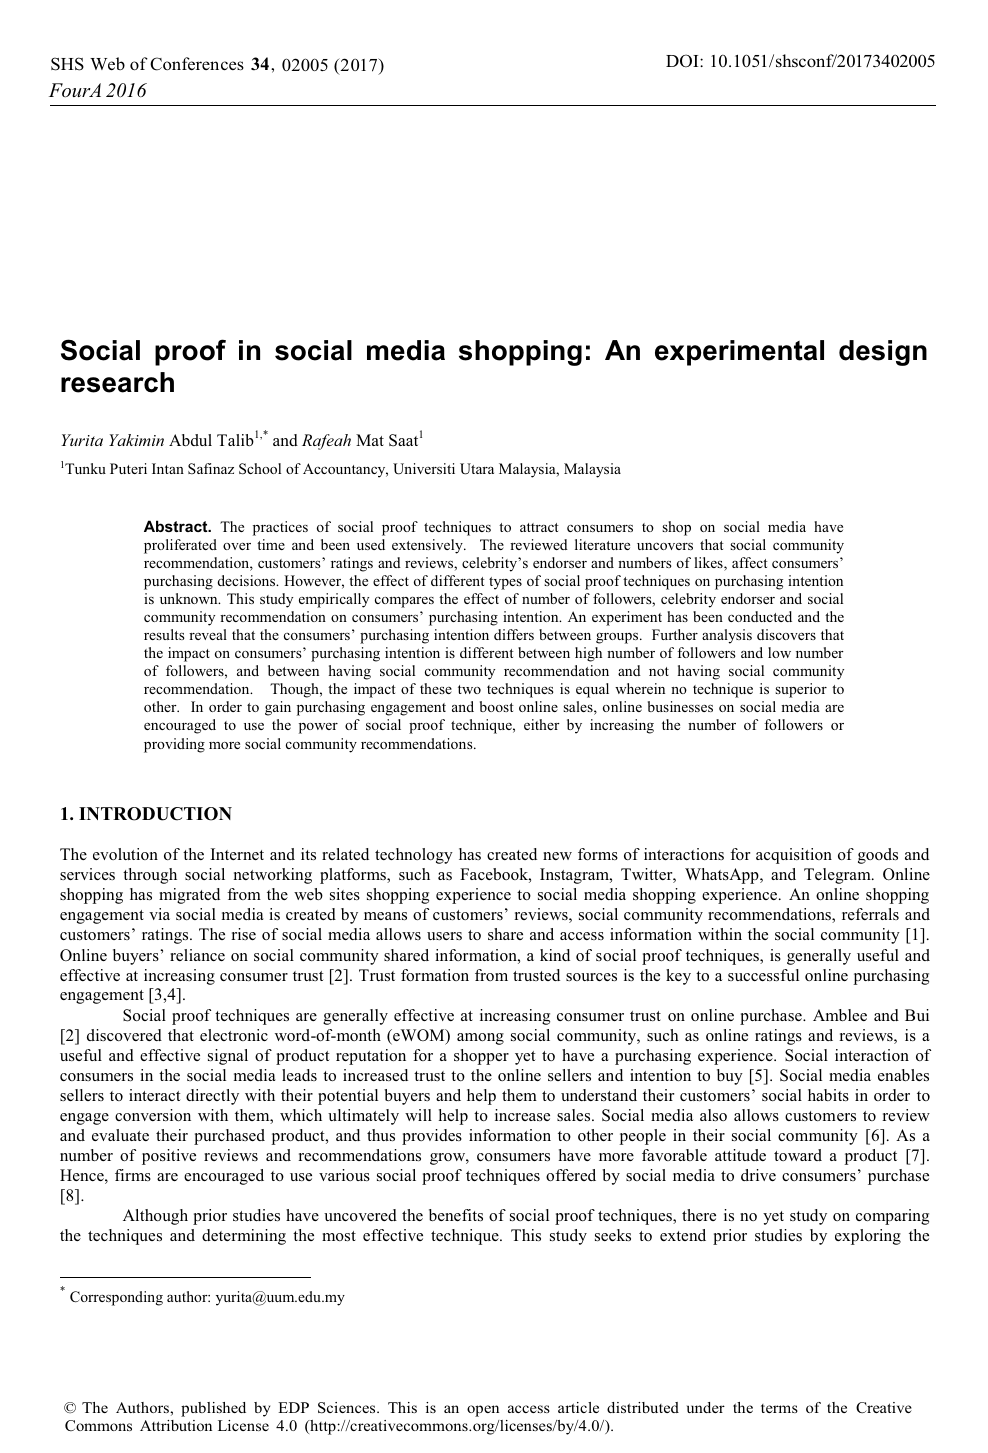 Social Proof In Social Media Shopping An Experimental Design Research Topic Of Research Paper In Economics And Business Download Scholarly Article Pdf And Read For Free On Cyberleninka Open Science Hub